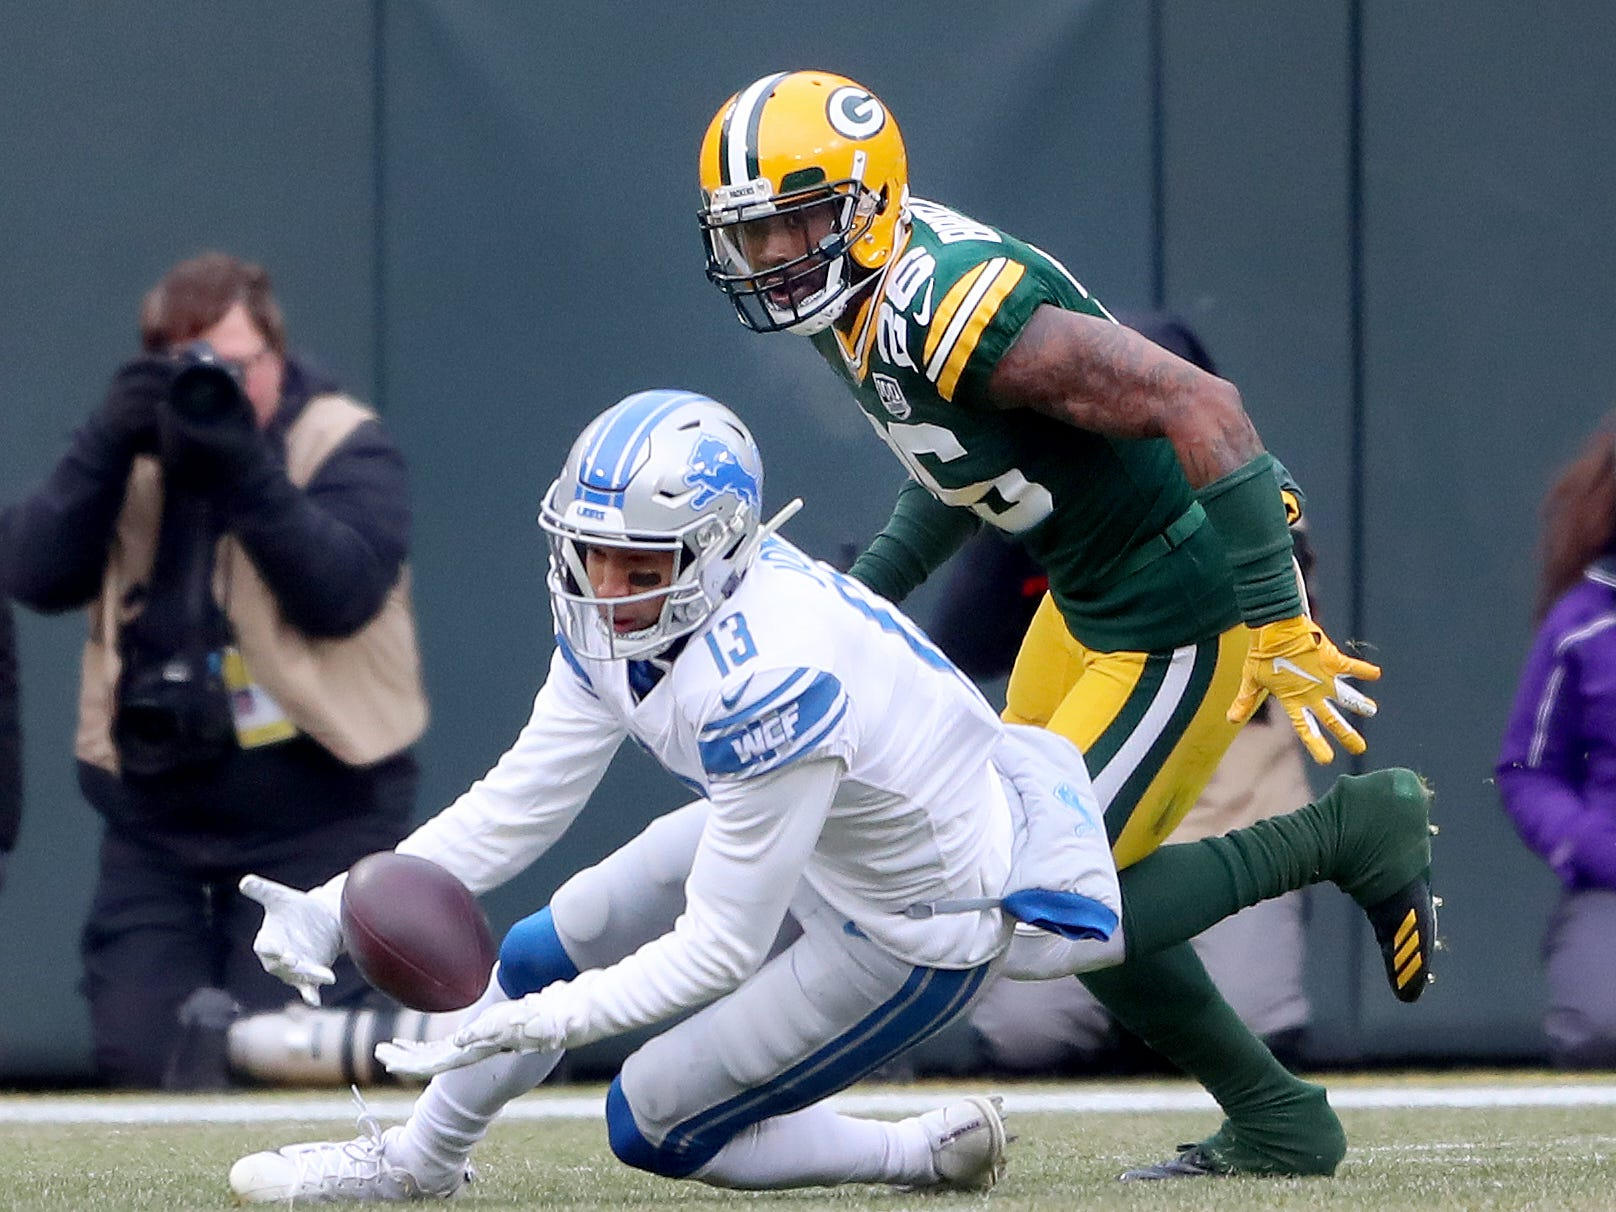 Detroit Lions wide receiver T.J. Jones (13) makes a catch against Green Bay Packers defensive back Raven Greene (36) at Lambeau Field Sunday, December 30, 2018 in Green Bay, Wis.